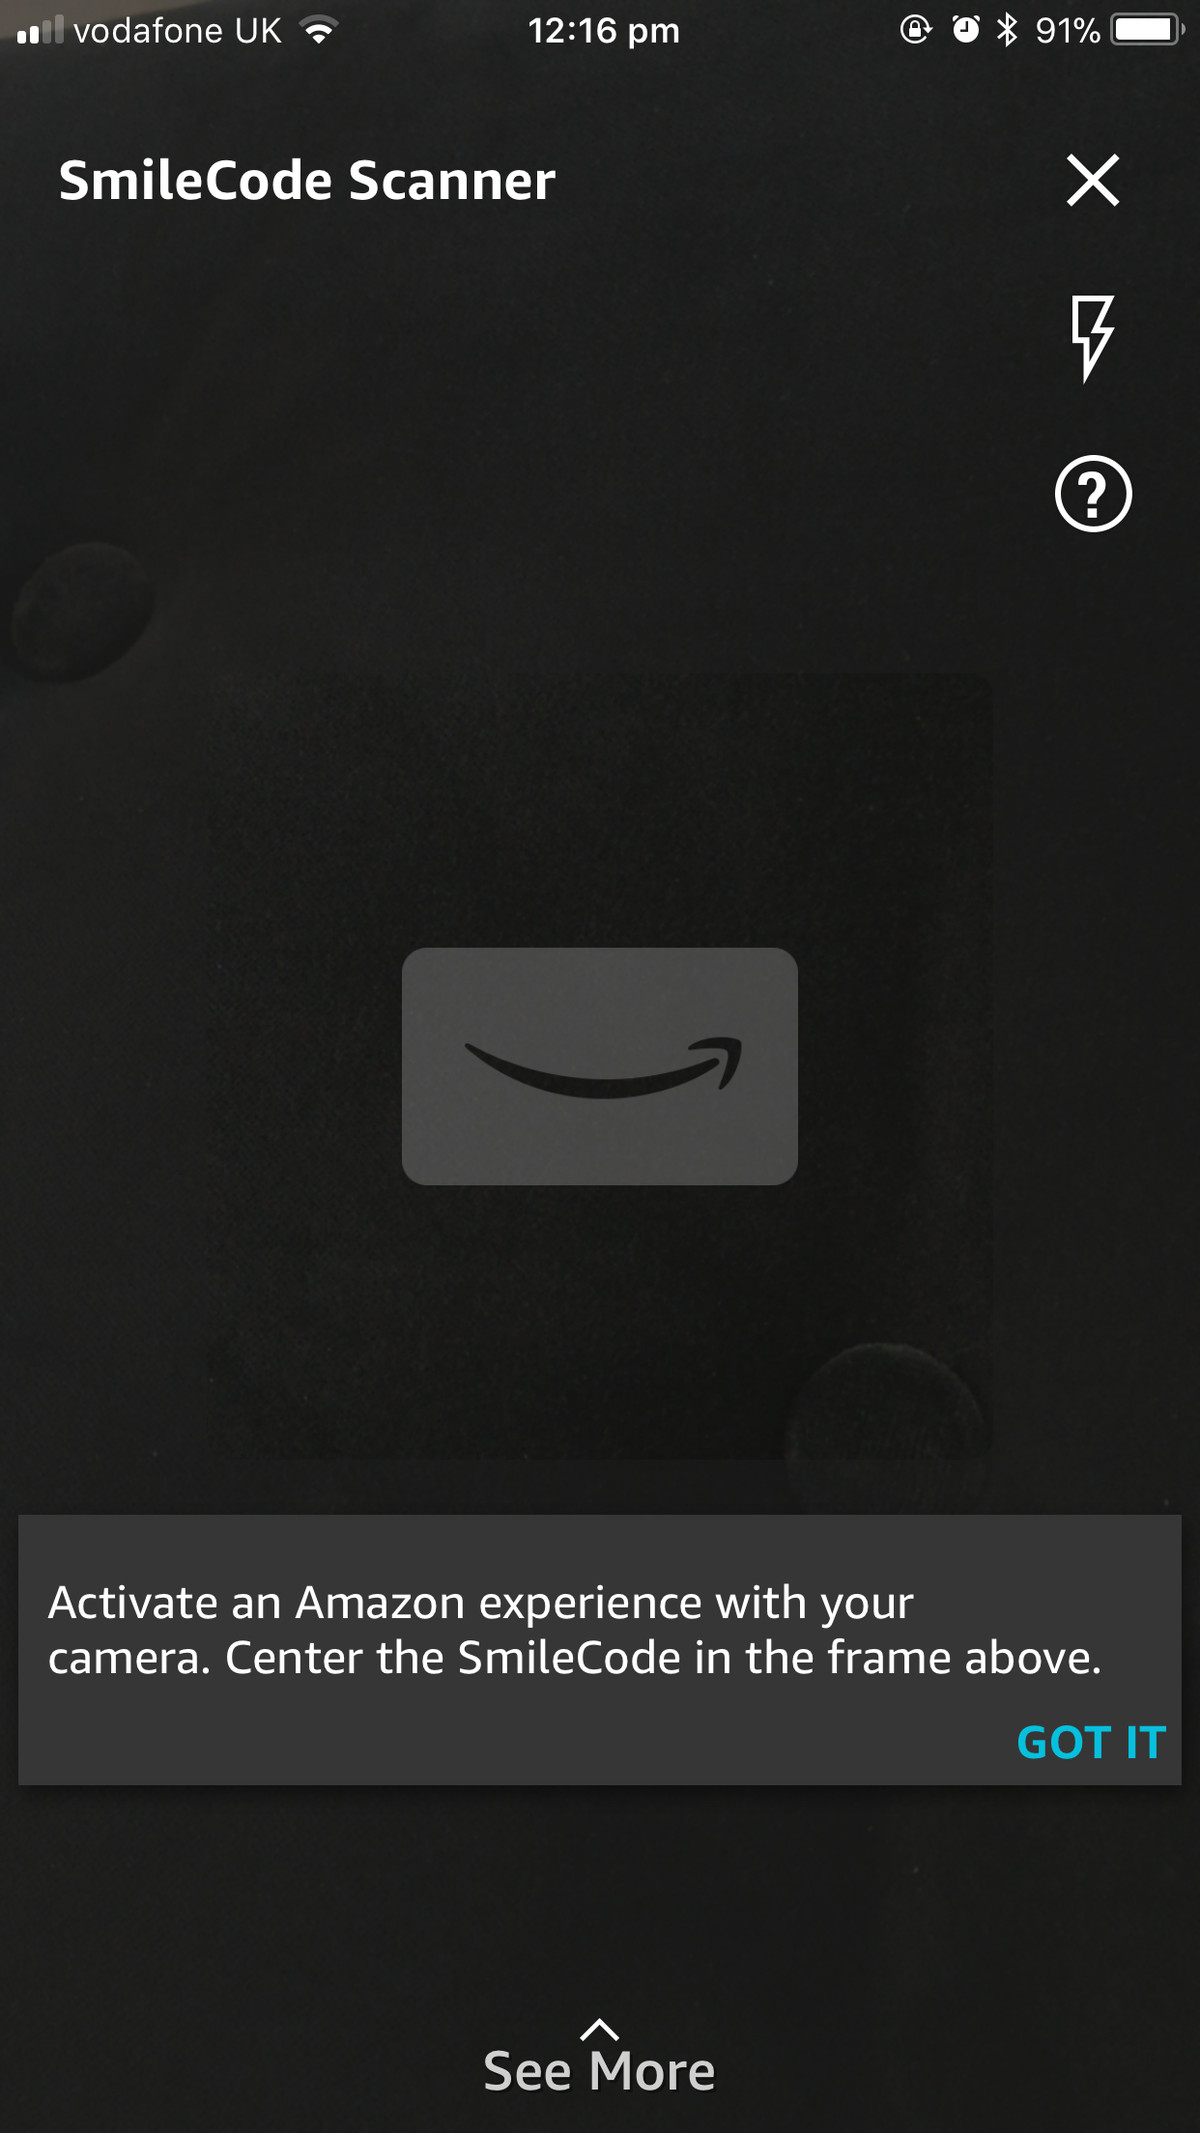 Amazon S Smilecodes Are Qr Codes Users Scan To Get Discounts And Other Offers The Verge